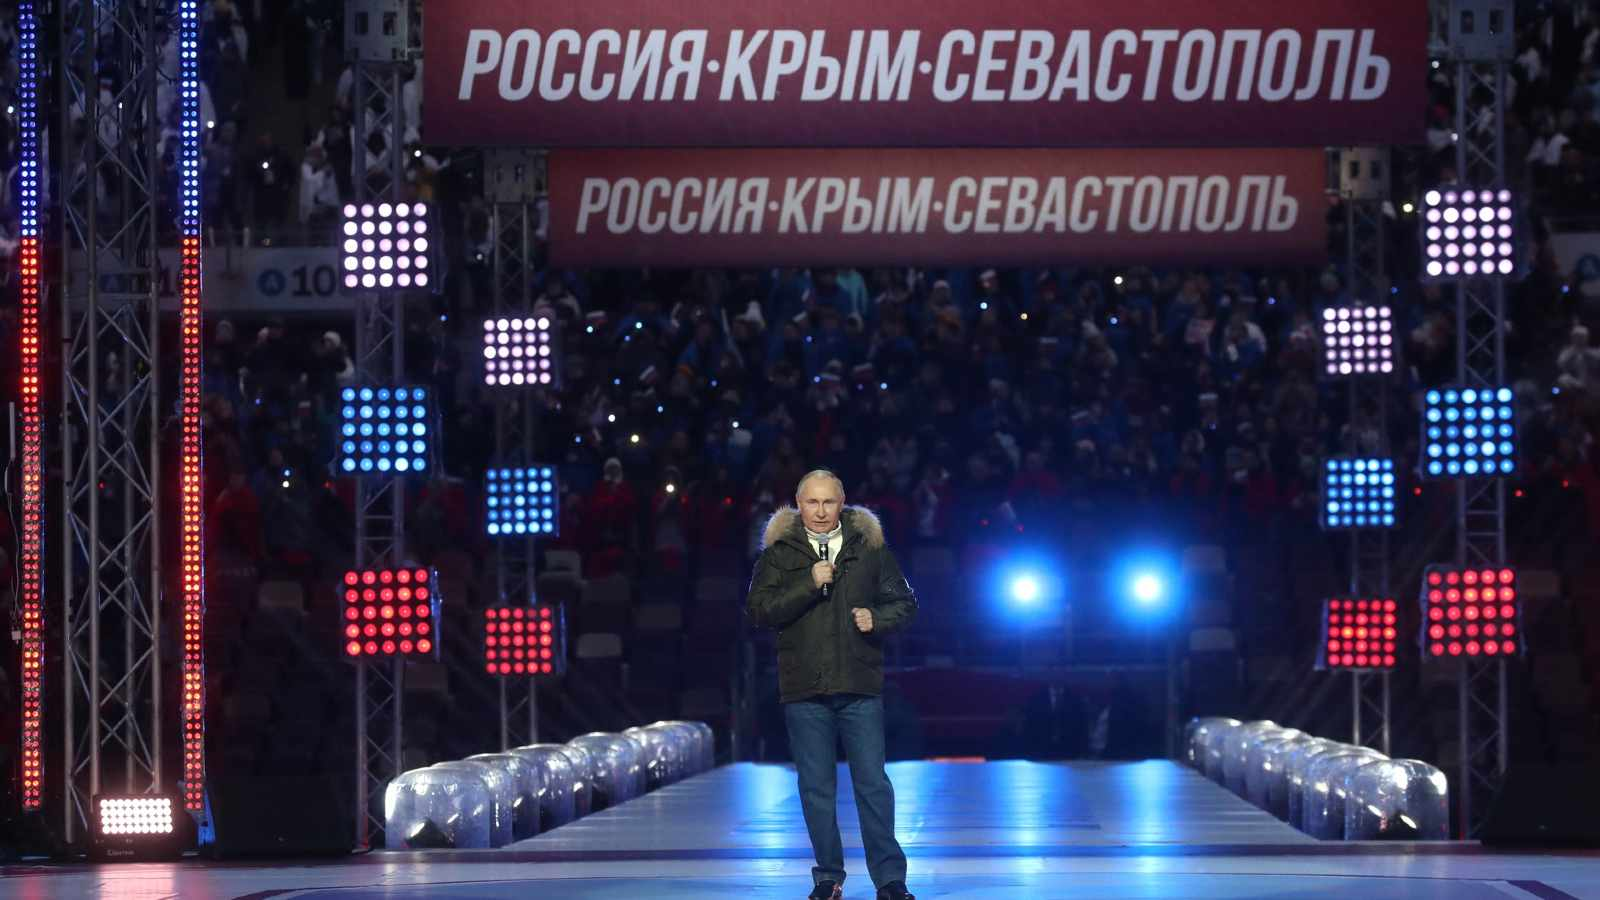 Photo: Vladimir Putin gave a speech at the festive event held at Luzhniki as part of the Days of Crimea in Moscow. March 18, 2021. Credit: Kremlin